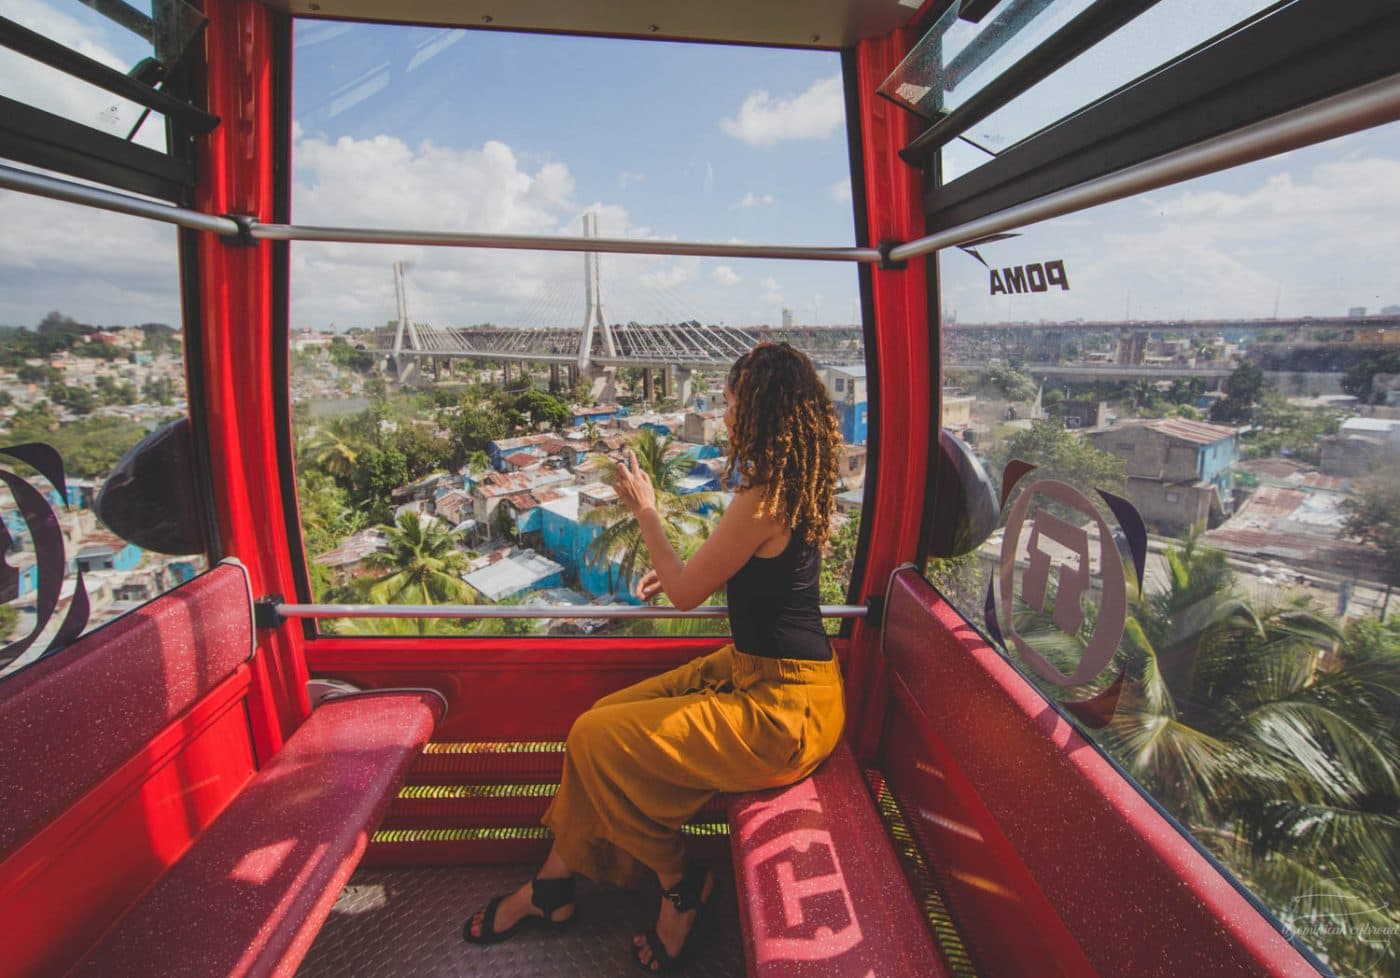 Riding and enjoying the views aboard the El Teleferico public transportation system in Santo Domingo.